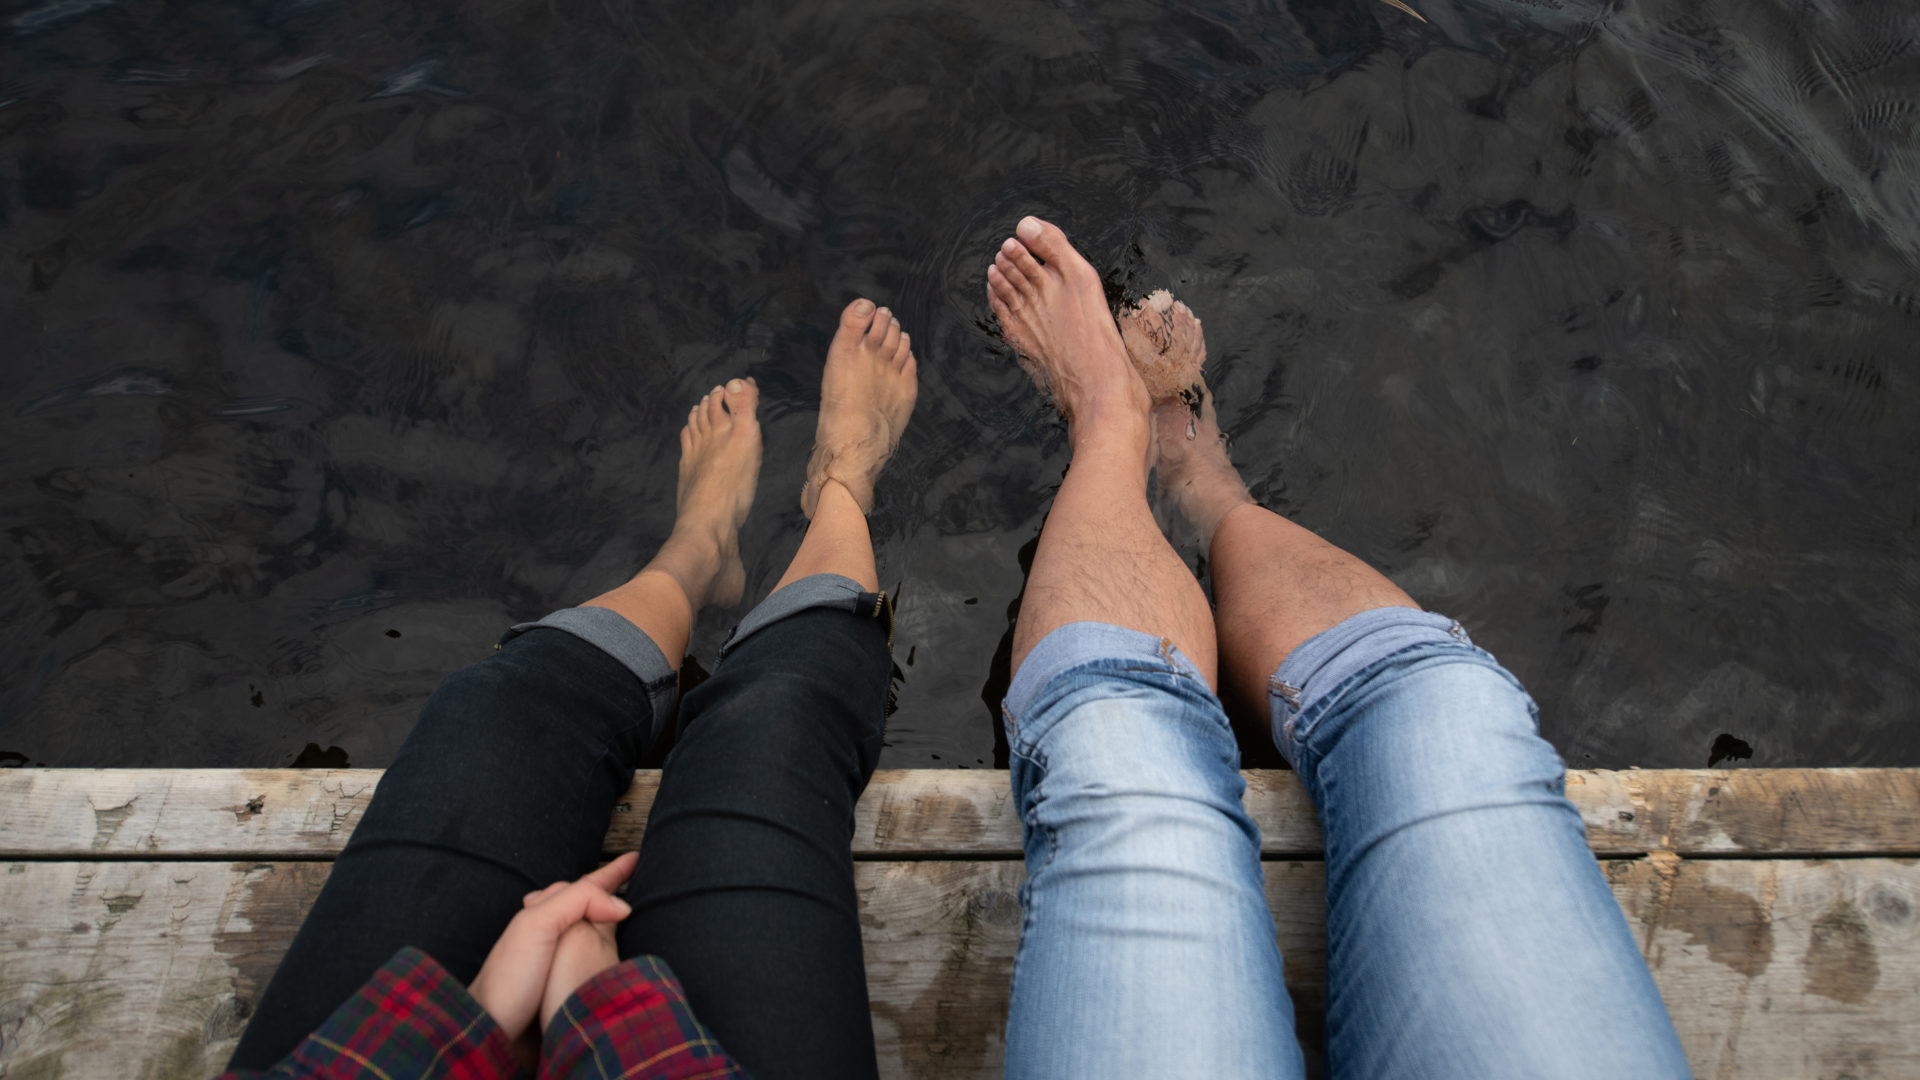 legs from the knees down of a man and woman sitting on a dock with their jeans rolled up and feet dangling in the water